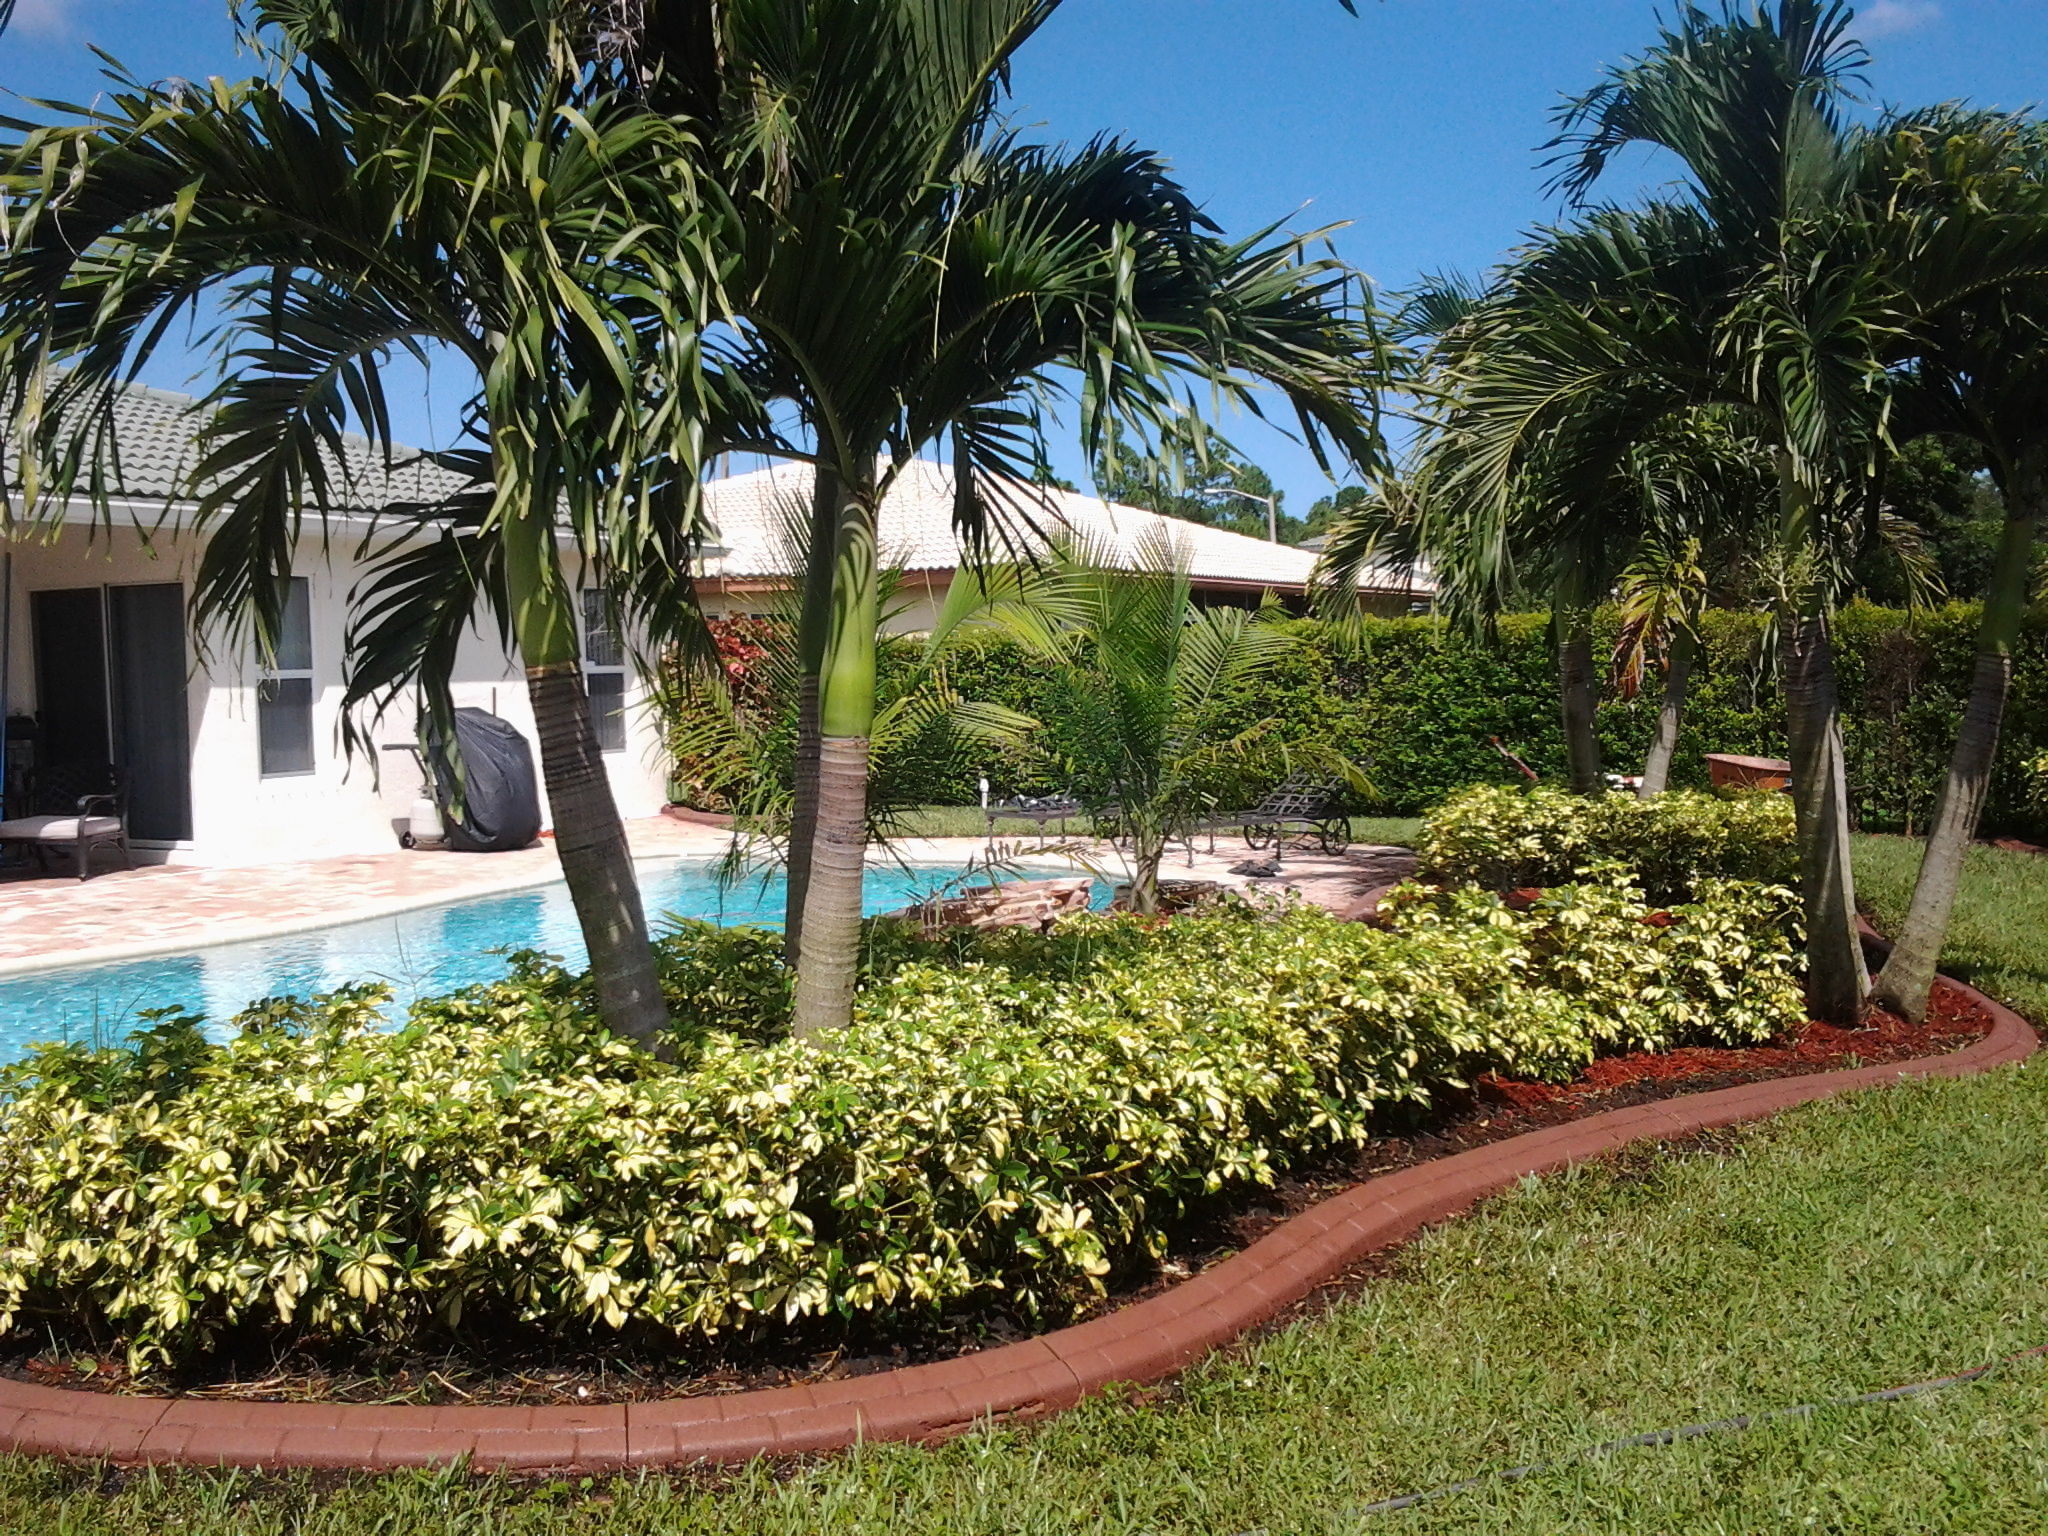 Association, HOA, Condo, landscape, edging, Deerfield, Delray Beach